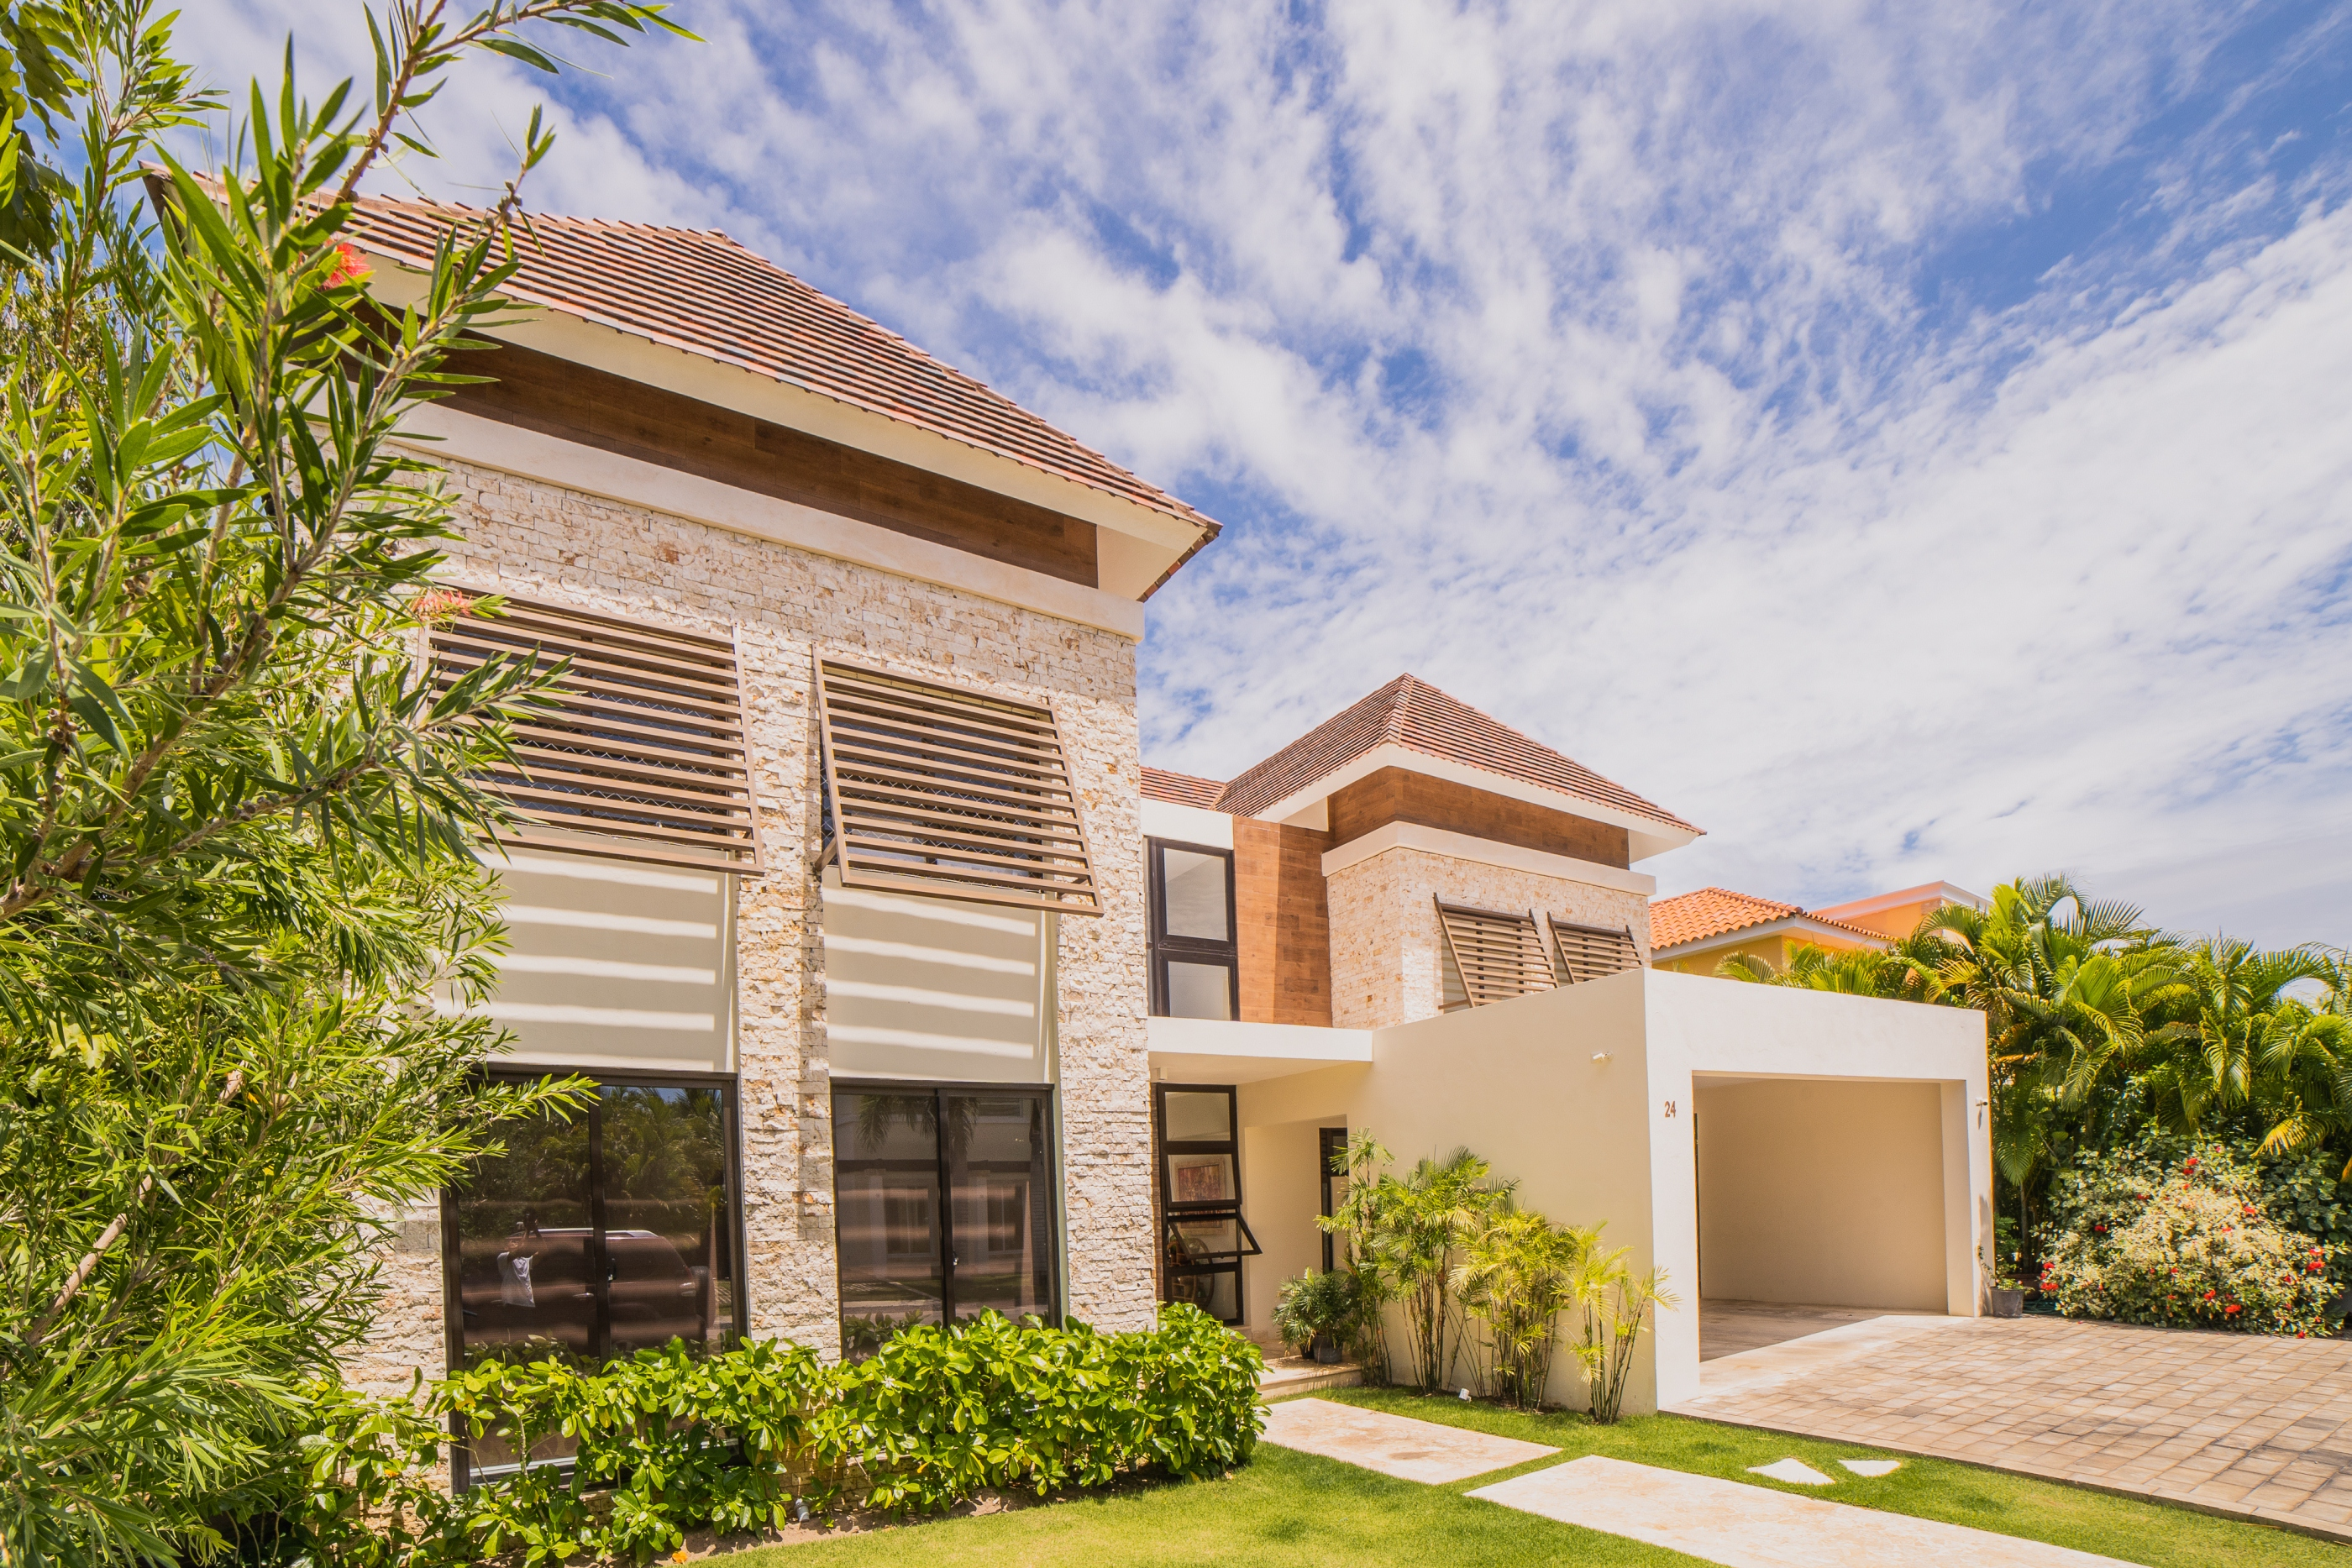 Villa Olivo 24 at Puntacana Village